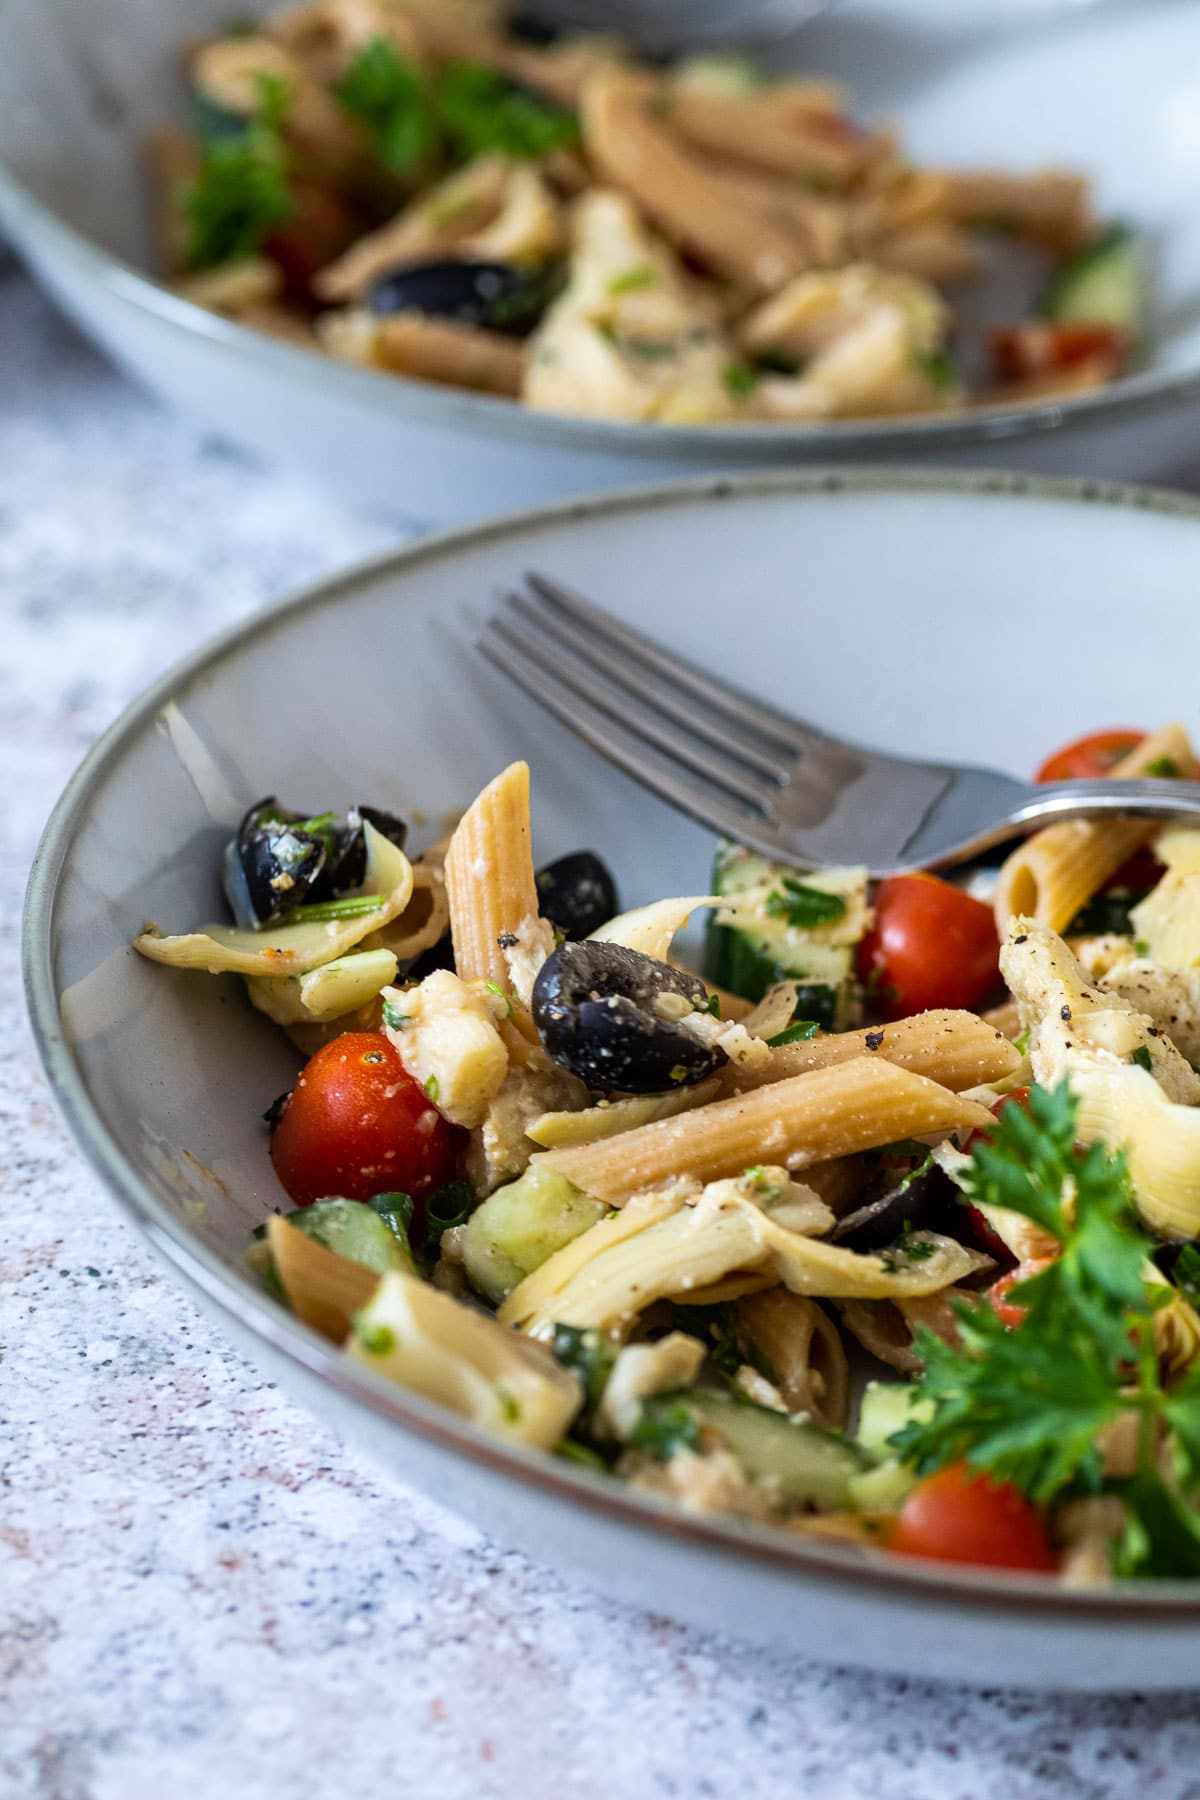 a plate with vegan artichoke pasta salad with a plate in the background